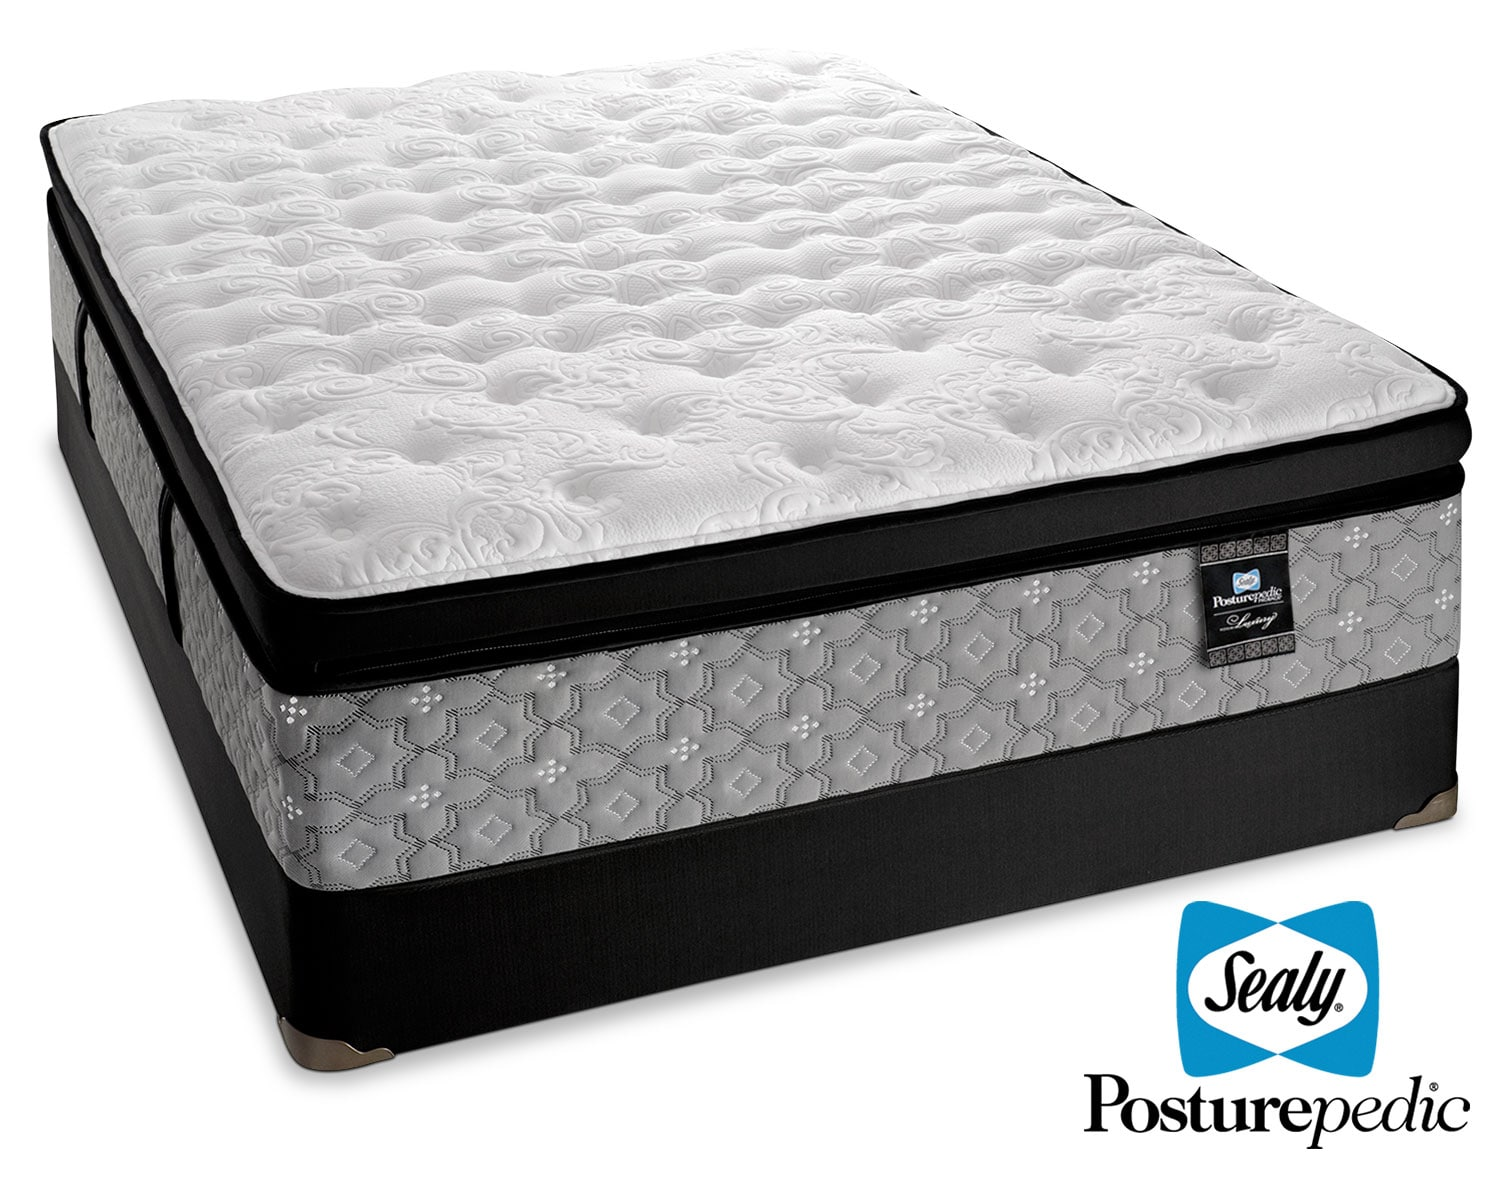 Mattresses and Bedding - Sealy Spartacus Firm Queen Mattress/Boxspring Set